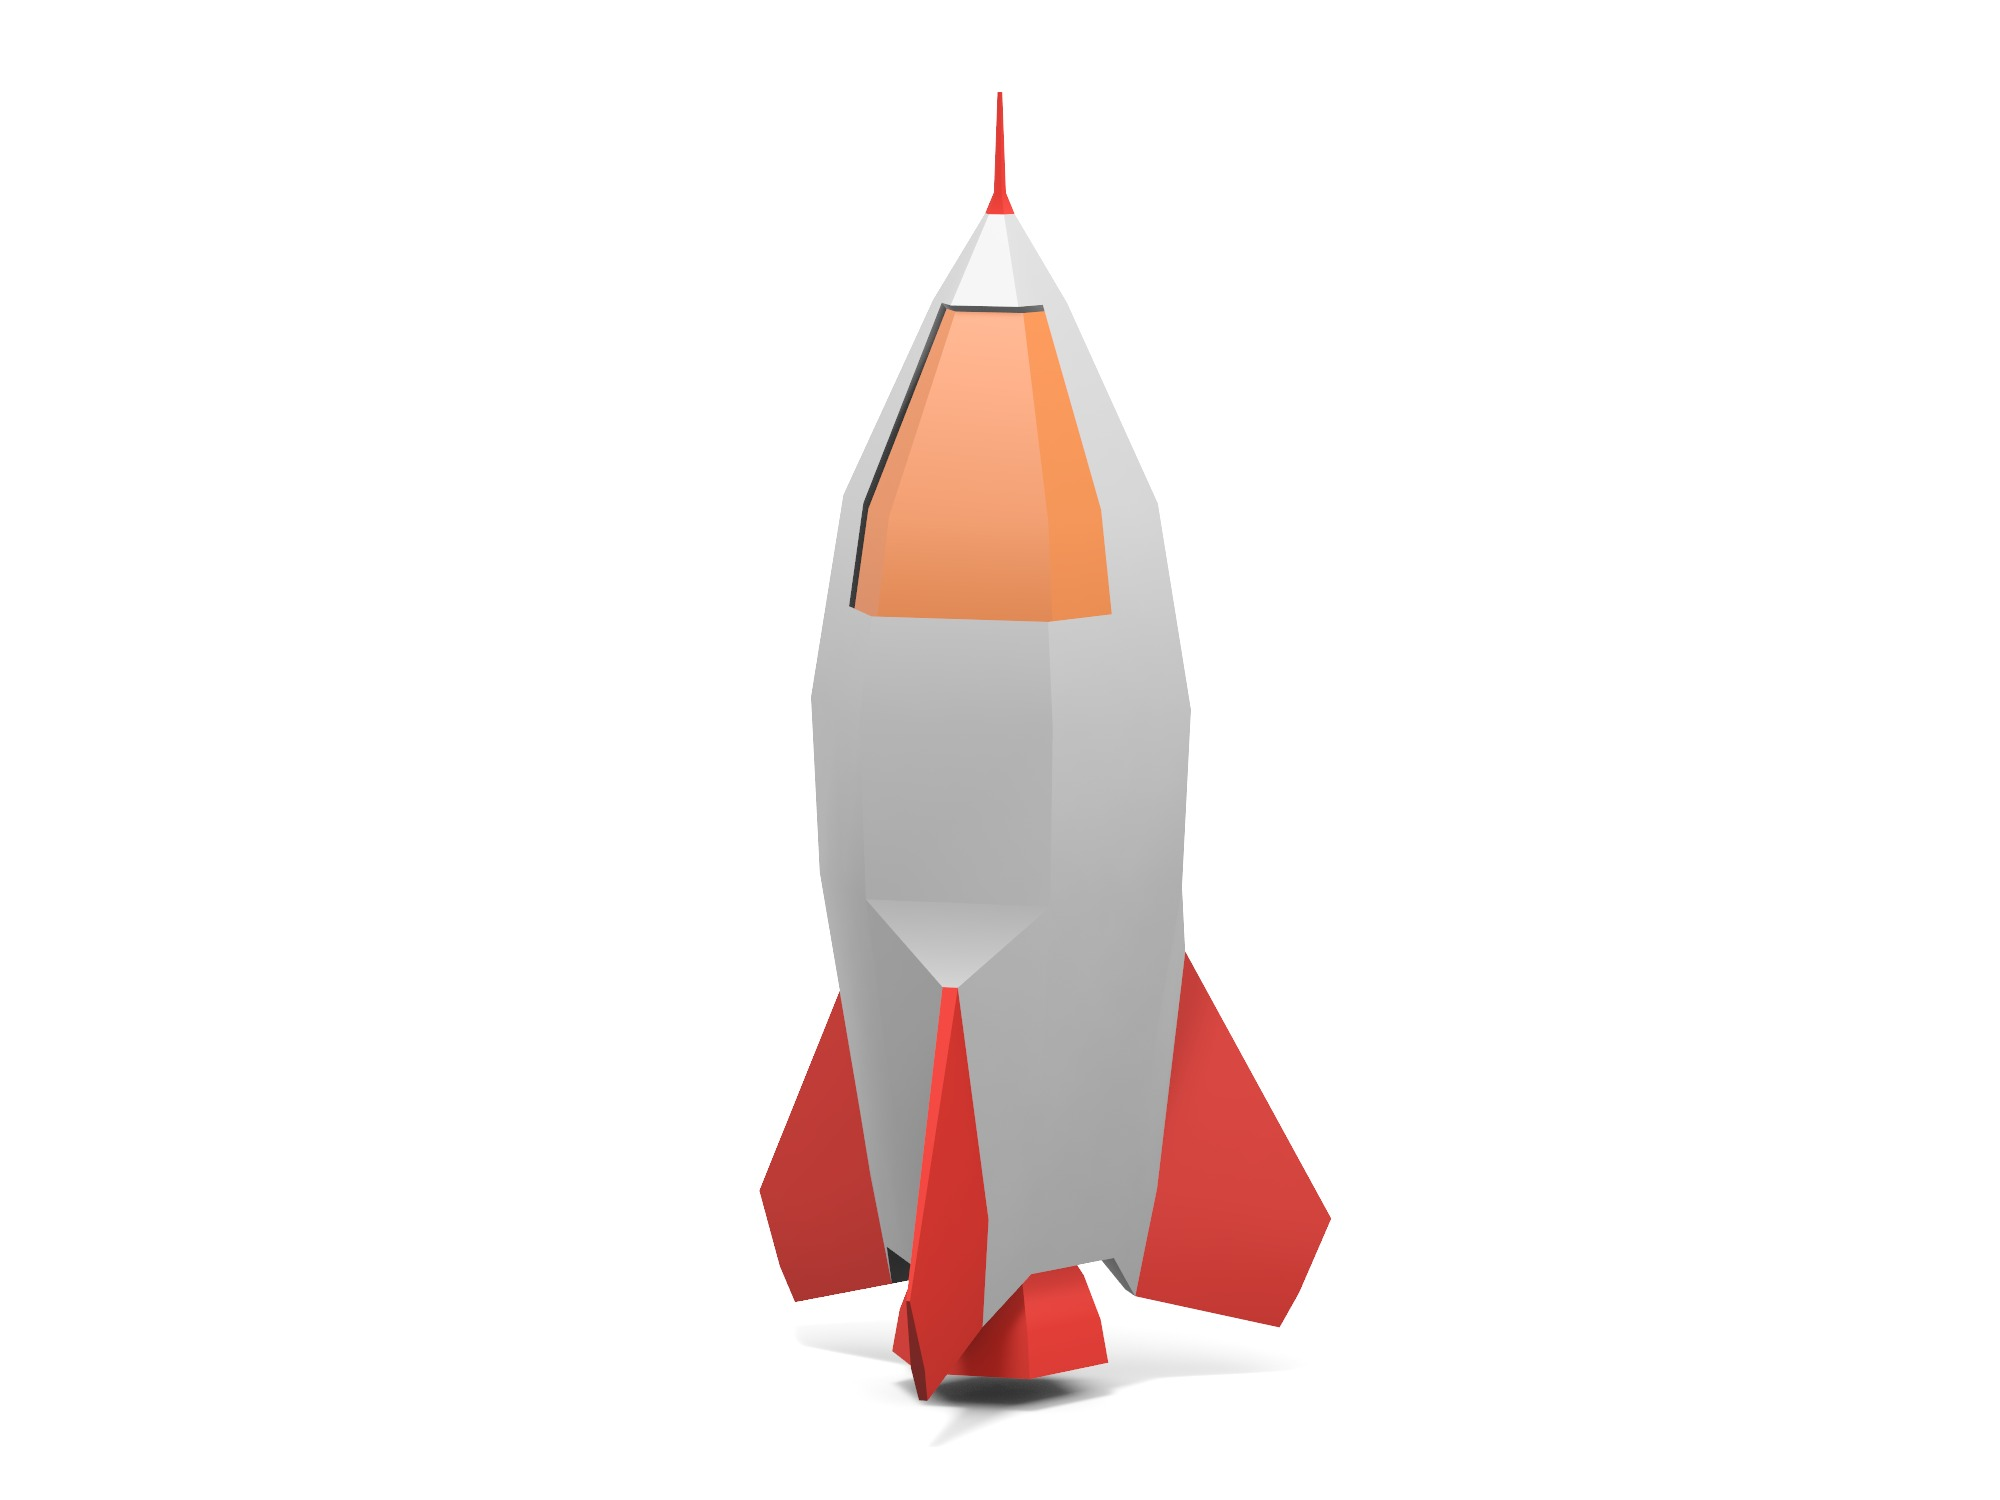 Rocket #4 - 3D design by Vectary assets Jun 3, 2019